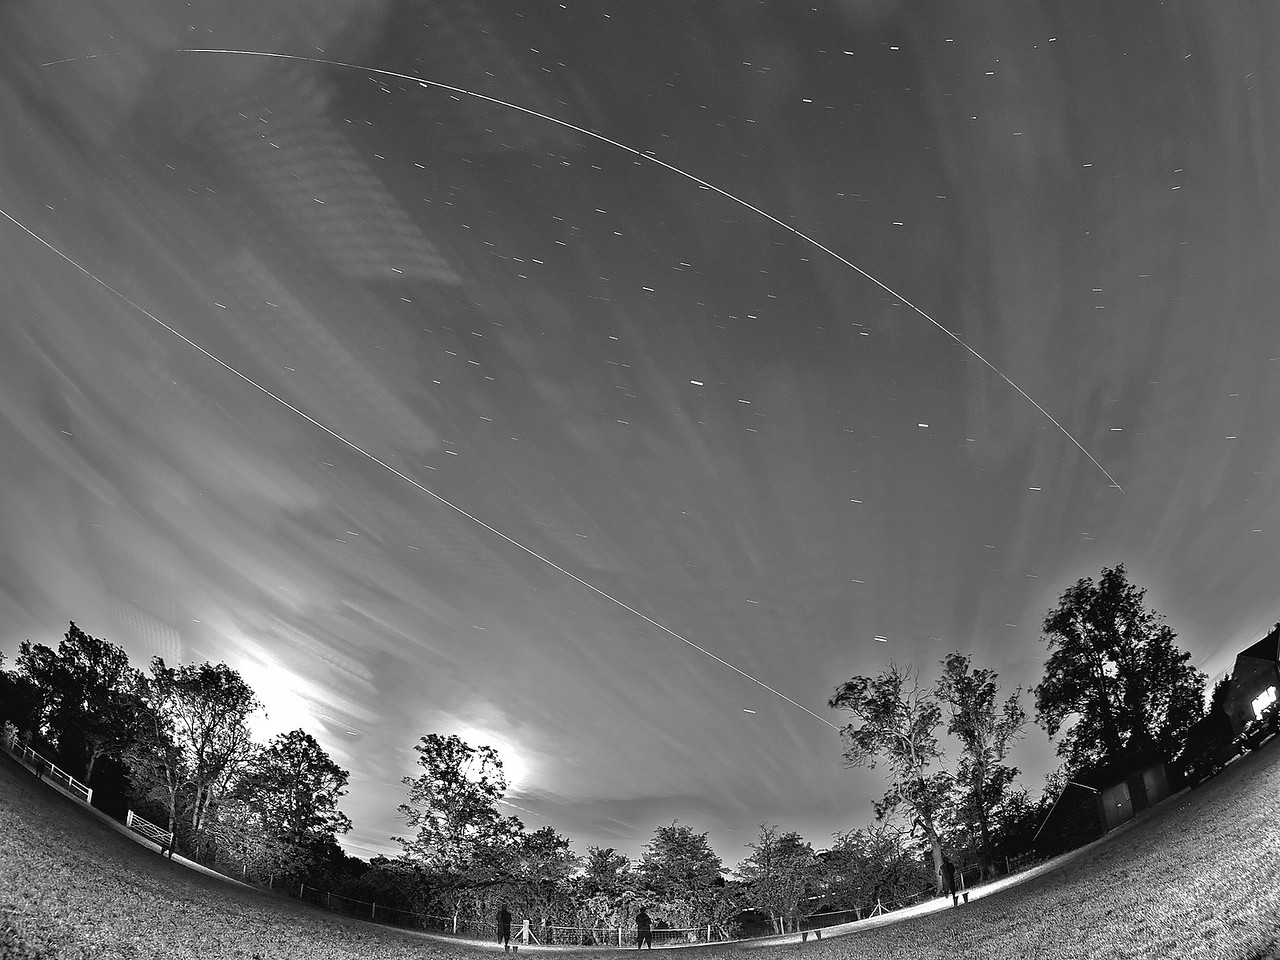 June 14/15 2011. Yet again another amazing marathon night of multiple ISS flybys across UK skies. What a month! This time the ISS flew over 5 times, however light/cloud precluded a few of these from sight. Produced this b&w alternative from a dual Flyby (2313 & 0048 hrs. Again cloud cover rolling in prevented the almost perfect shot.   Why are we getting so many ISS passes in one day? Universe Today Captured with Oly E5 & 8mm fisheye.  Camera settings: 15s exposures shot continuous during flyby, ISO 500, F3.5. Foreground lit with a few flash bursts away from camera.